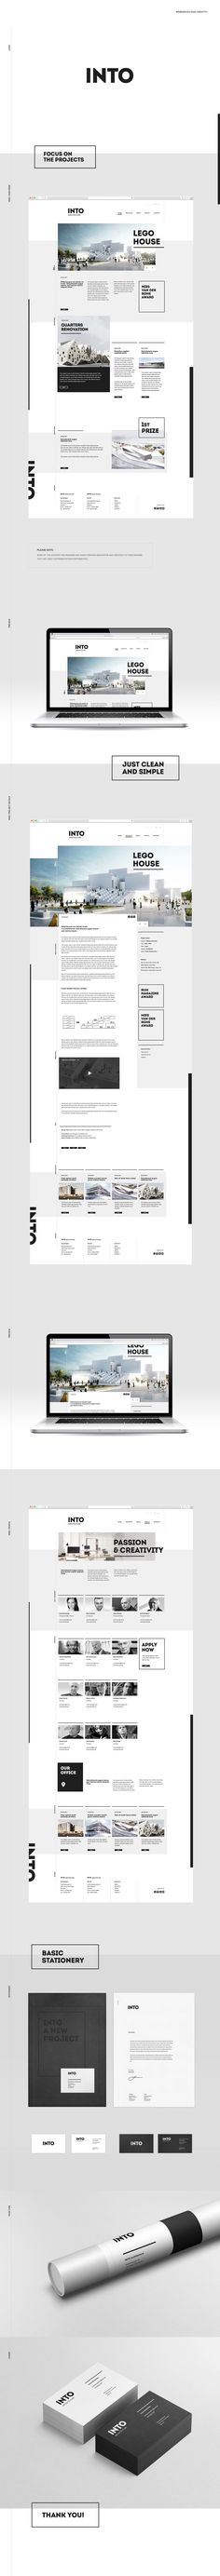 INTO | architecture office concept on Behance